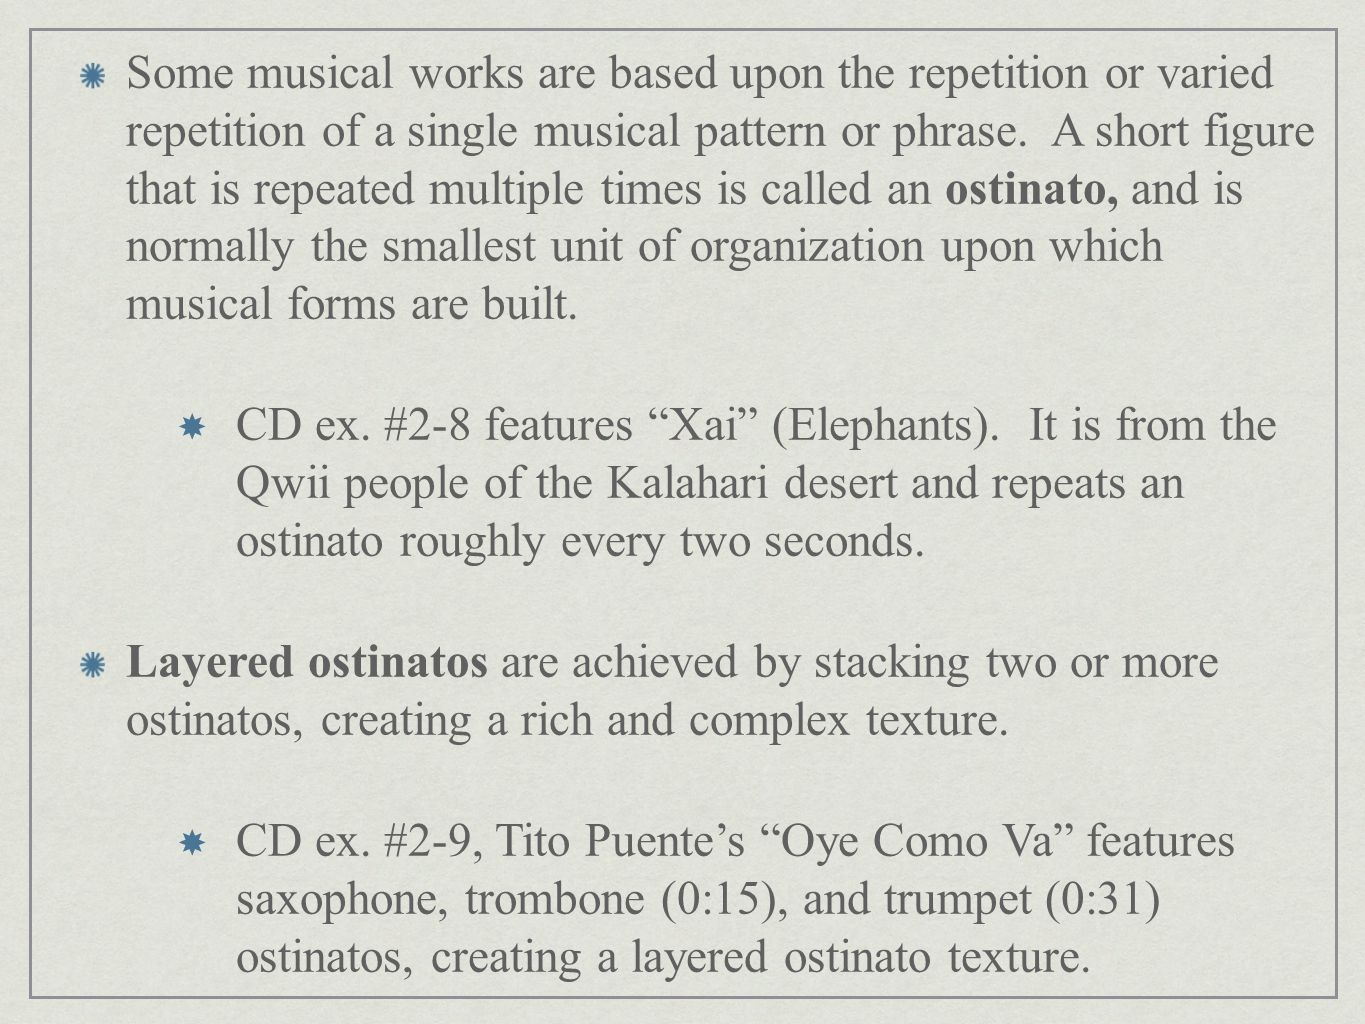 Some musical works are based upon the repetition or varied repetition of a single musical pattern or phrase. A short figure that is repeated multiple times is called an ostinato, and is normally the smallest unit of organization upon which musical forms are built.